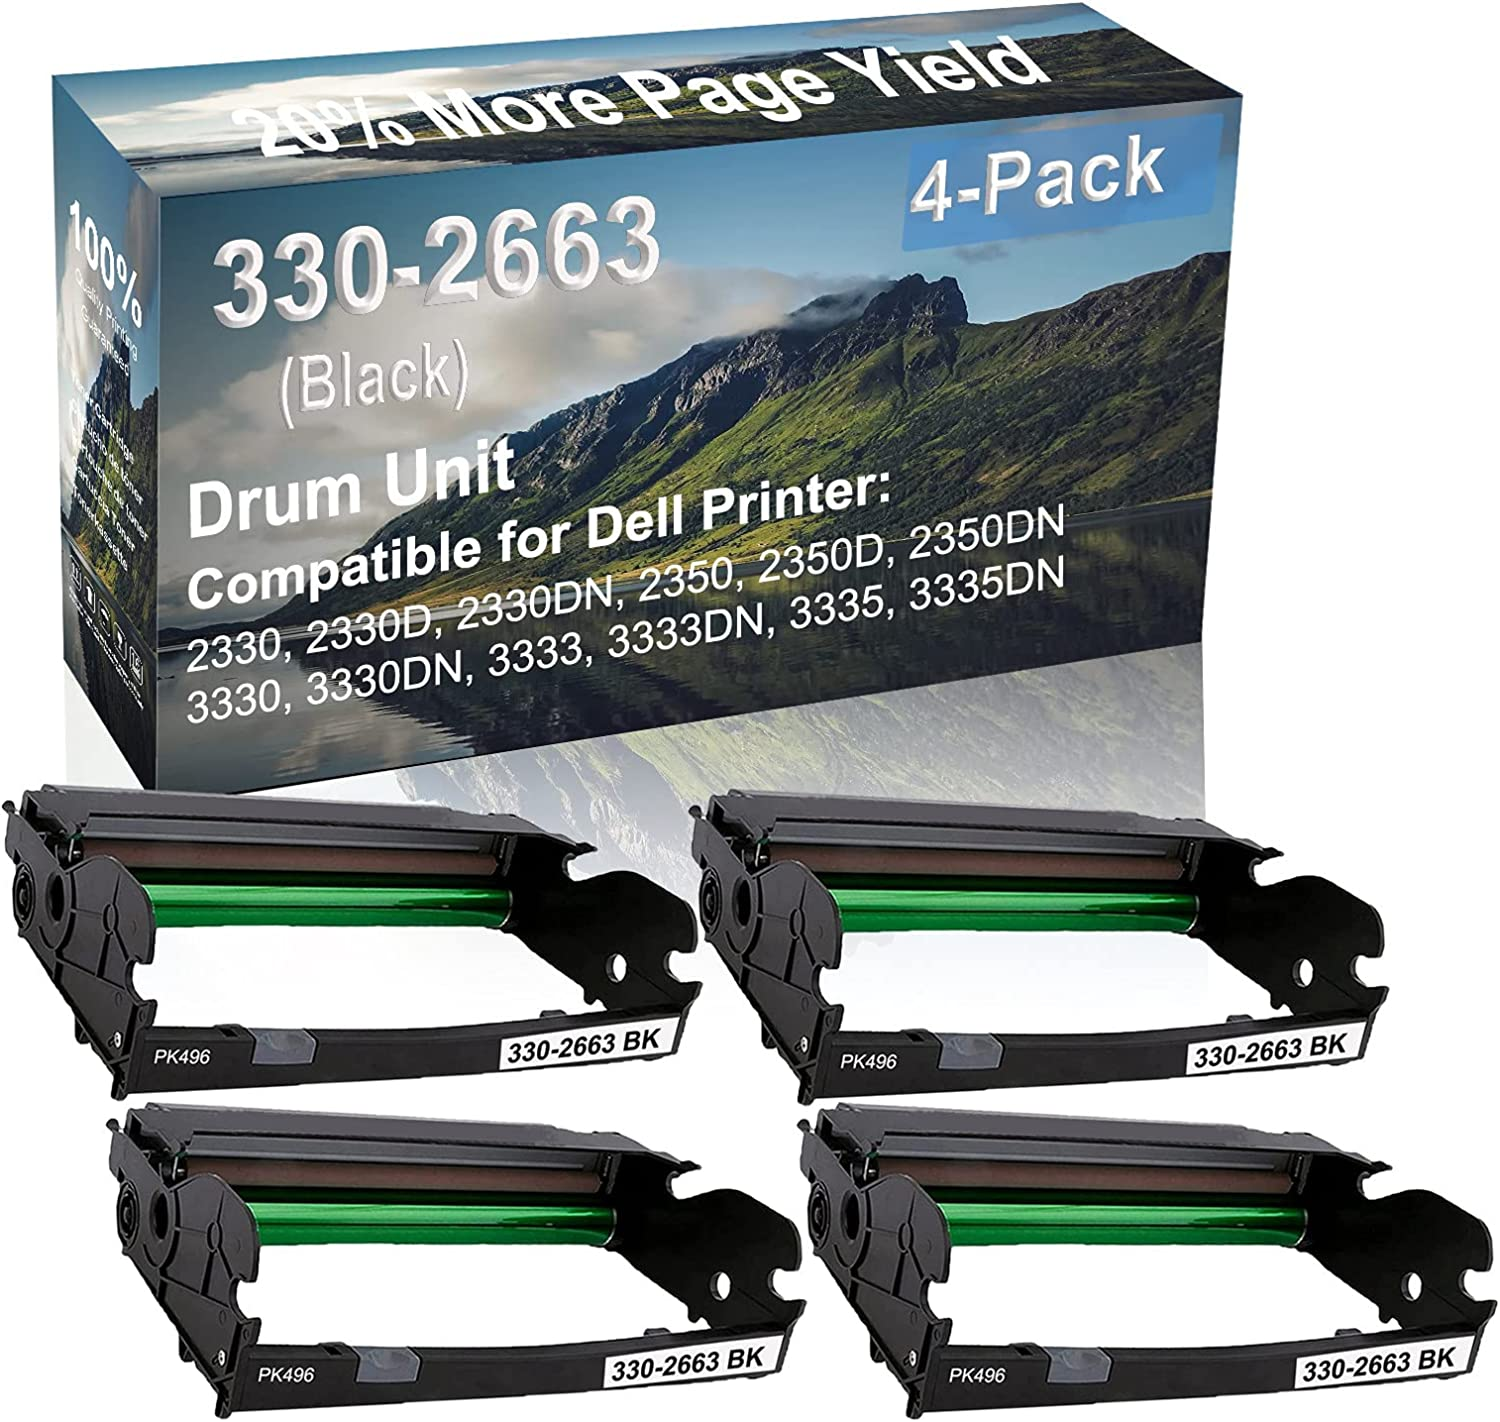 4-Pack Compatible Drum Unit (Black) Replacement for Dell 330-2663 PK496 Drum Kit use for Dell 3333, 3333DN, 3335, 3335DN Printer